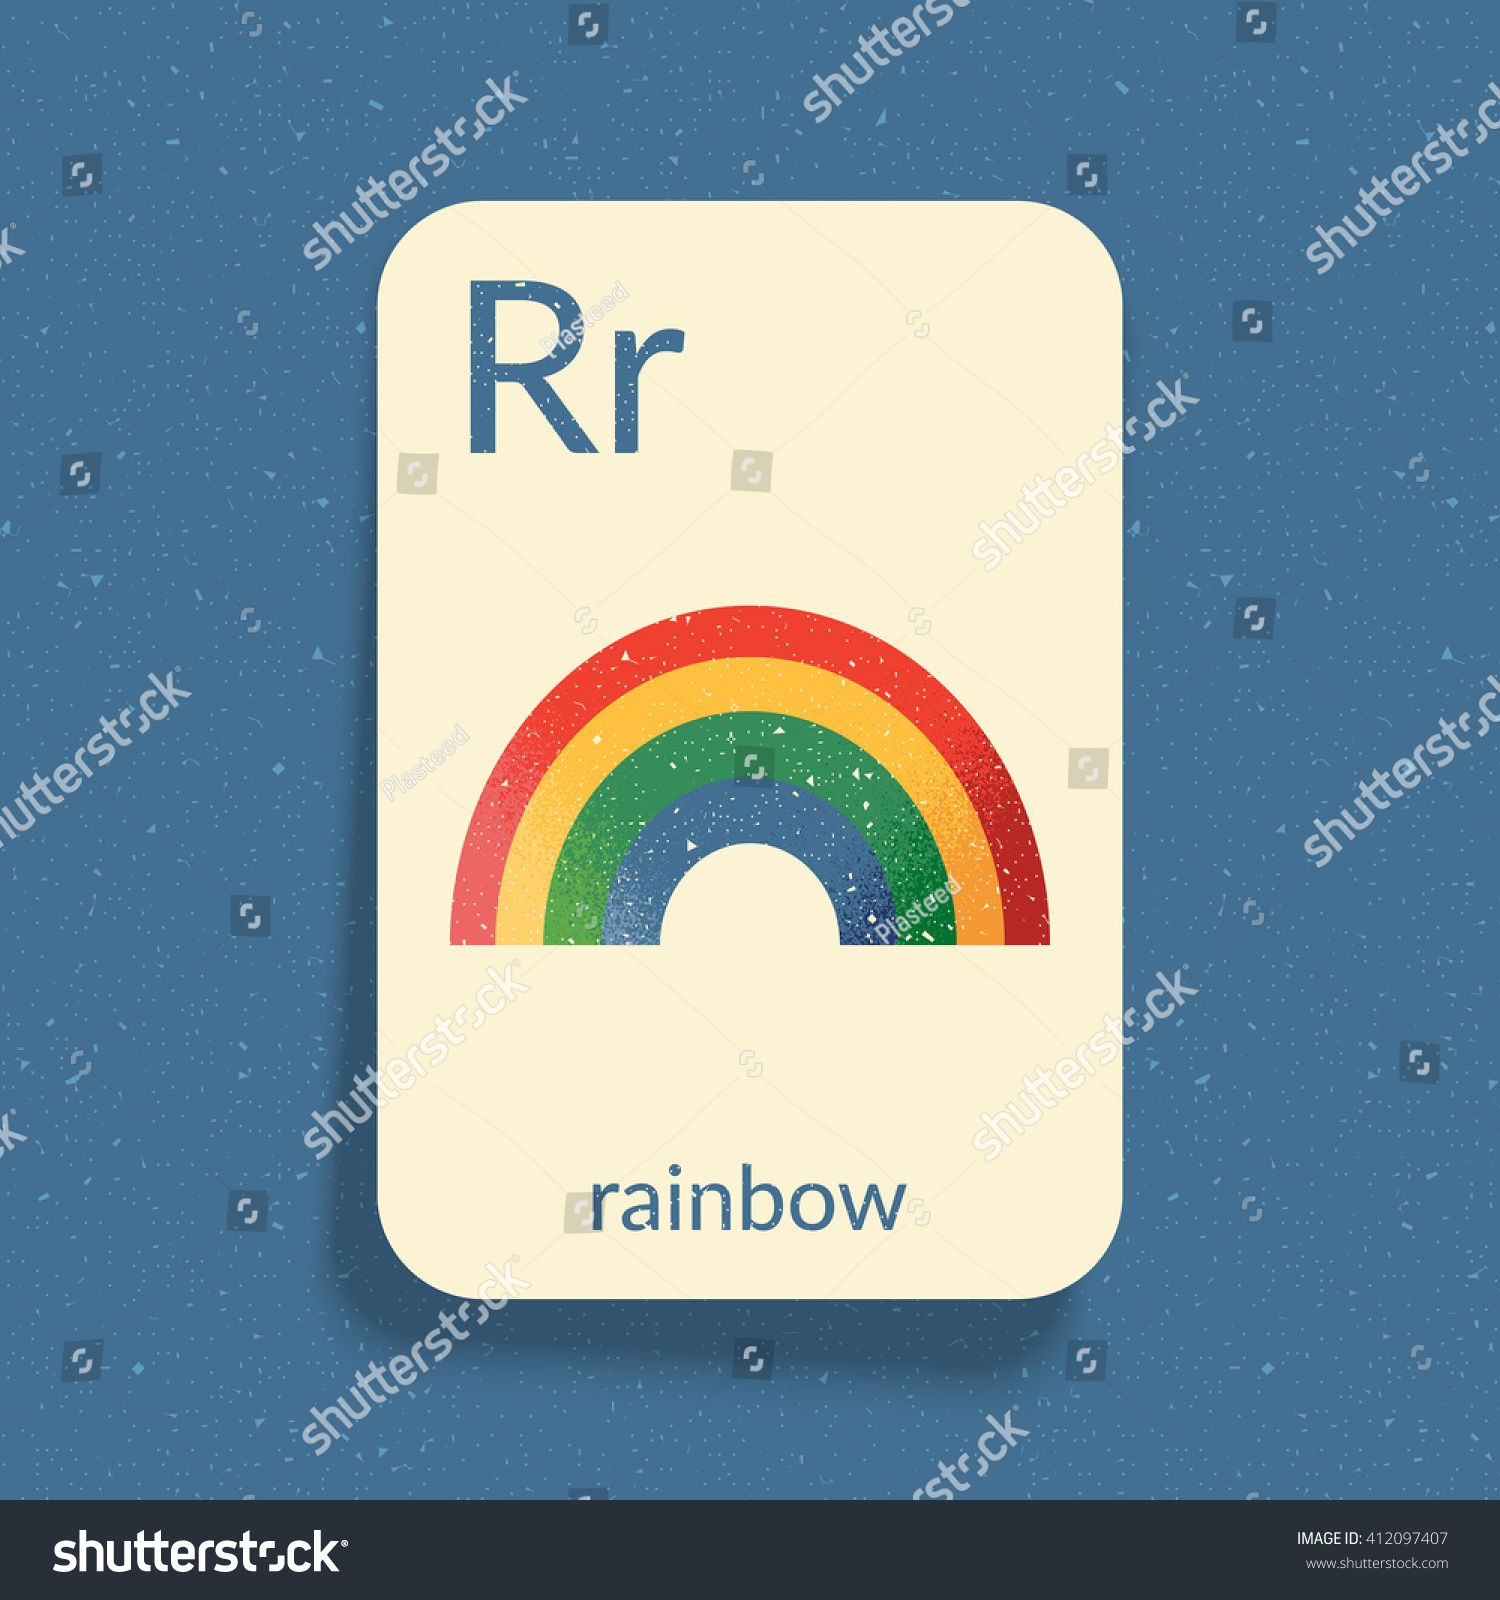 Image result for vintage rainbow logo